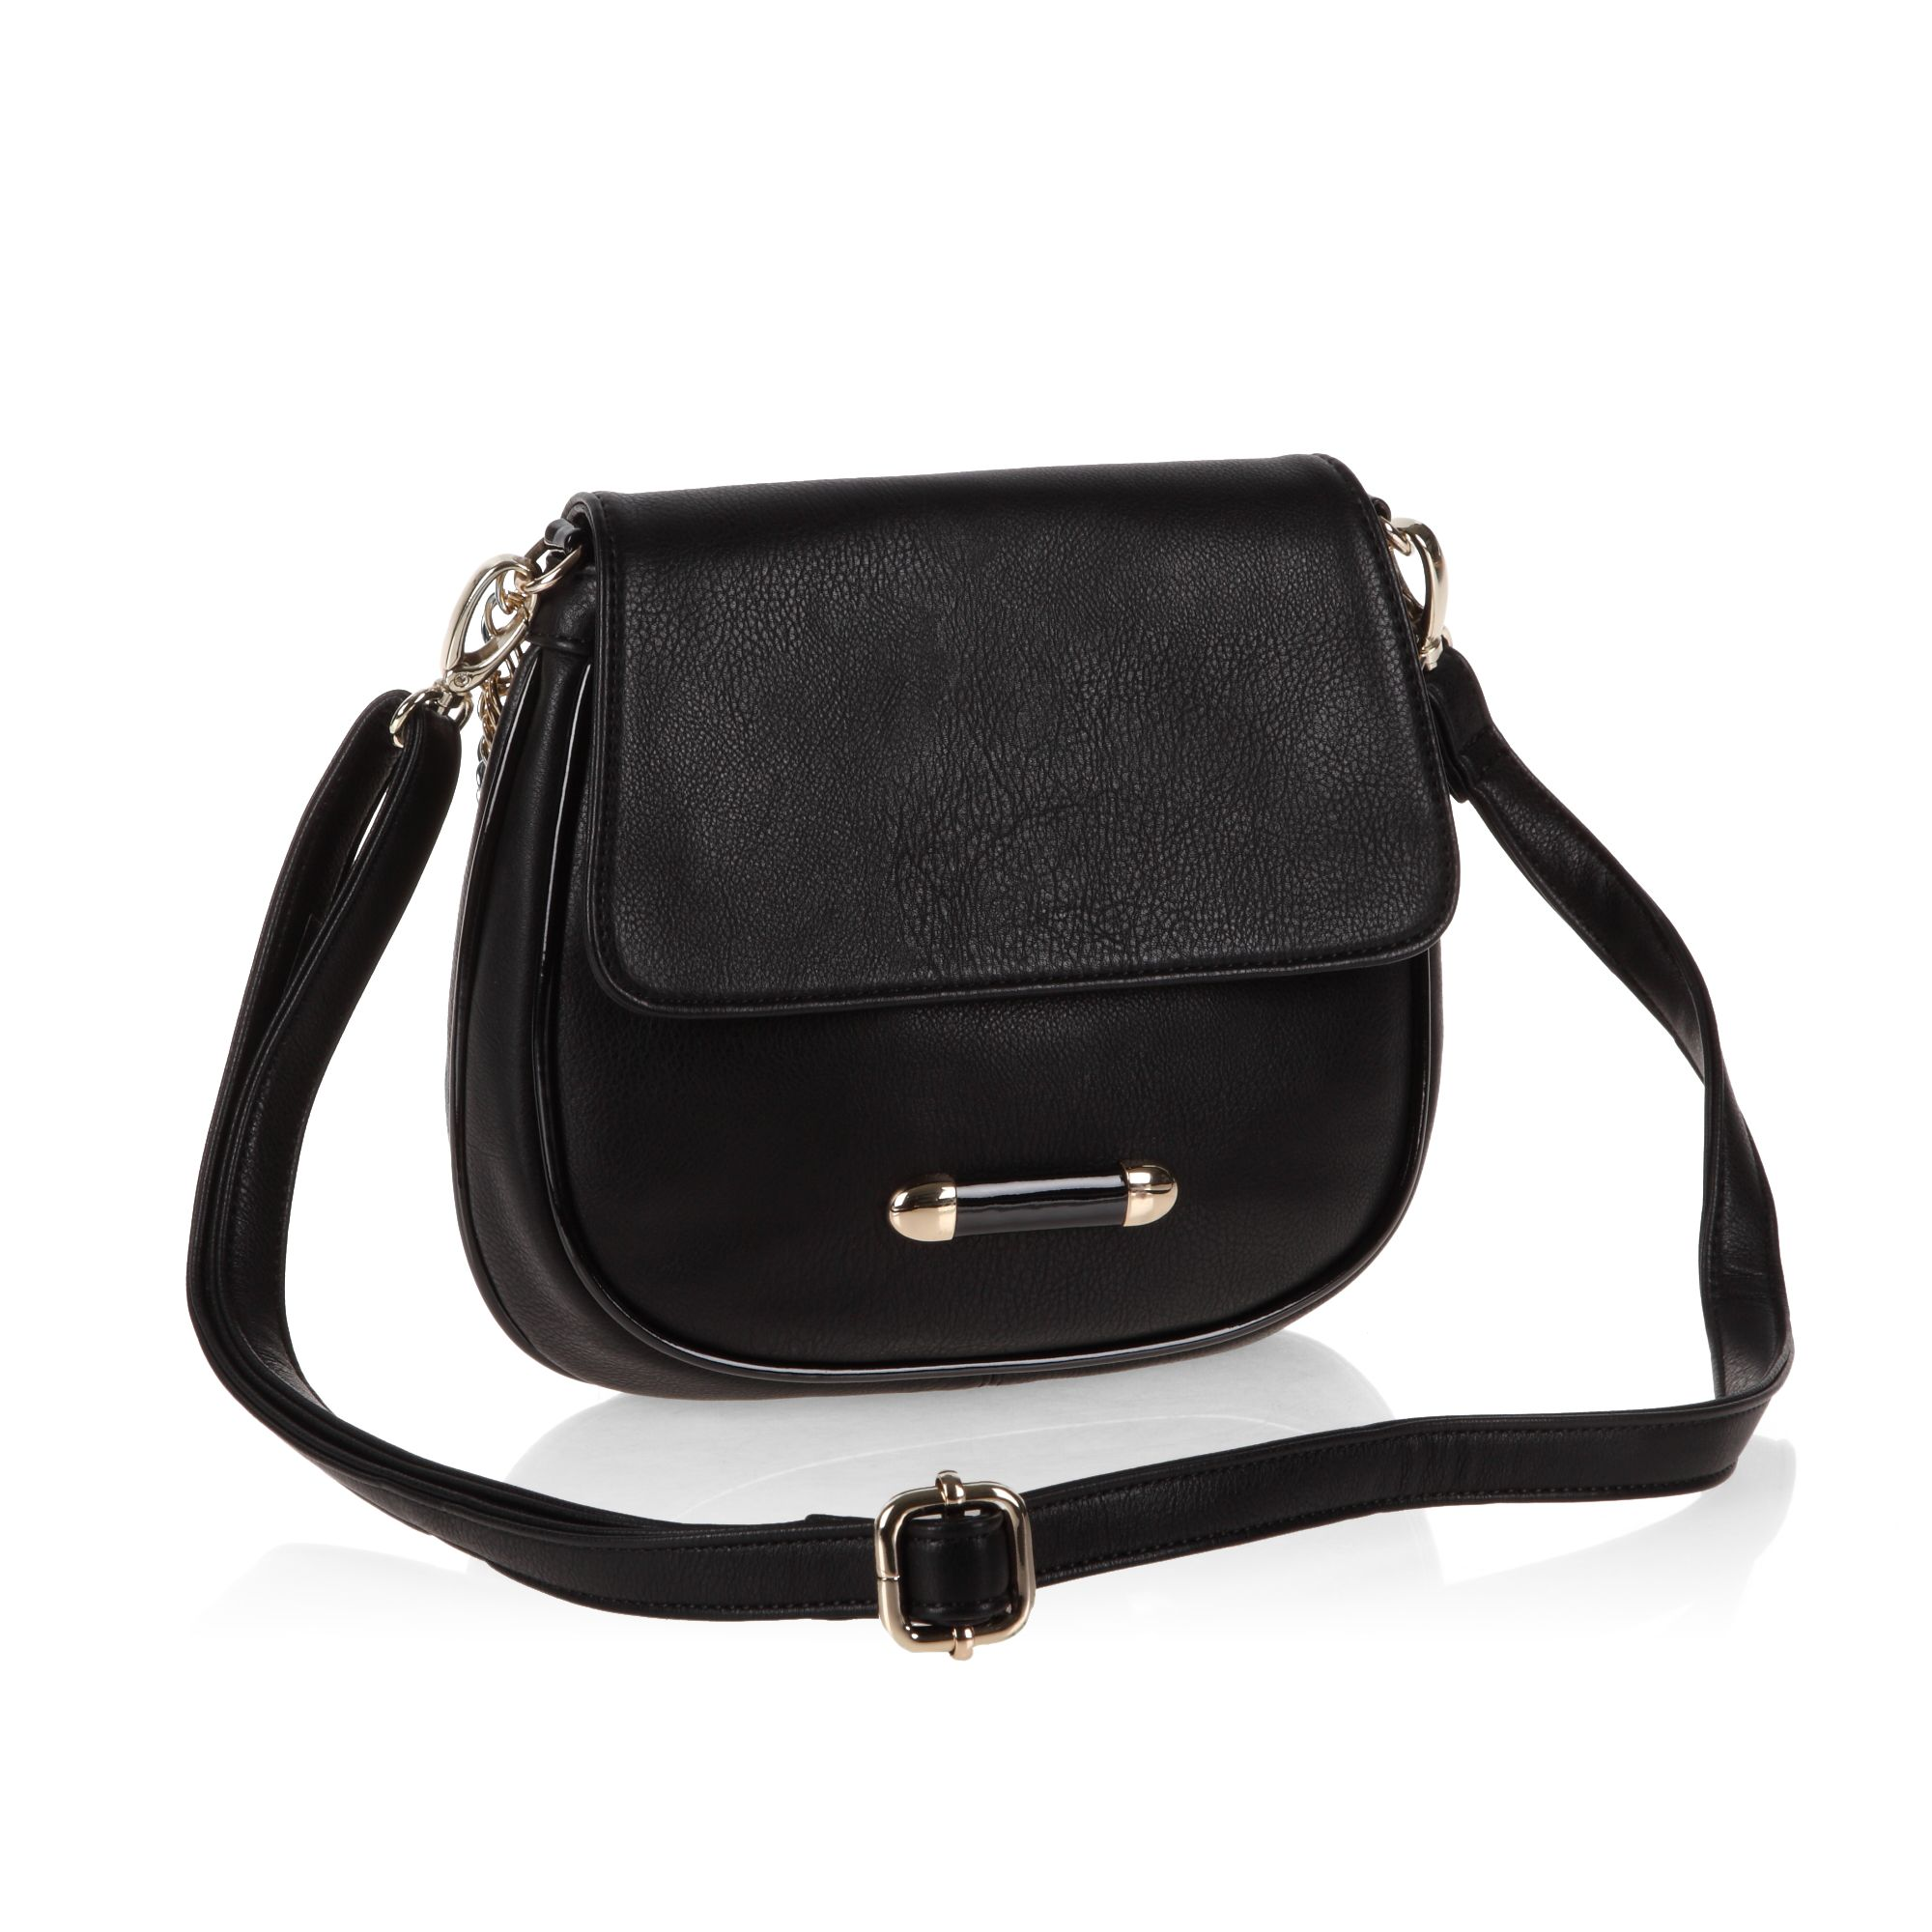 Top zip and flapover small satchel bag